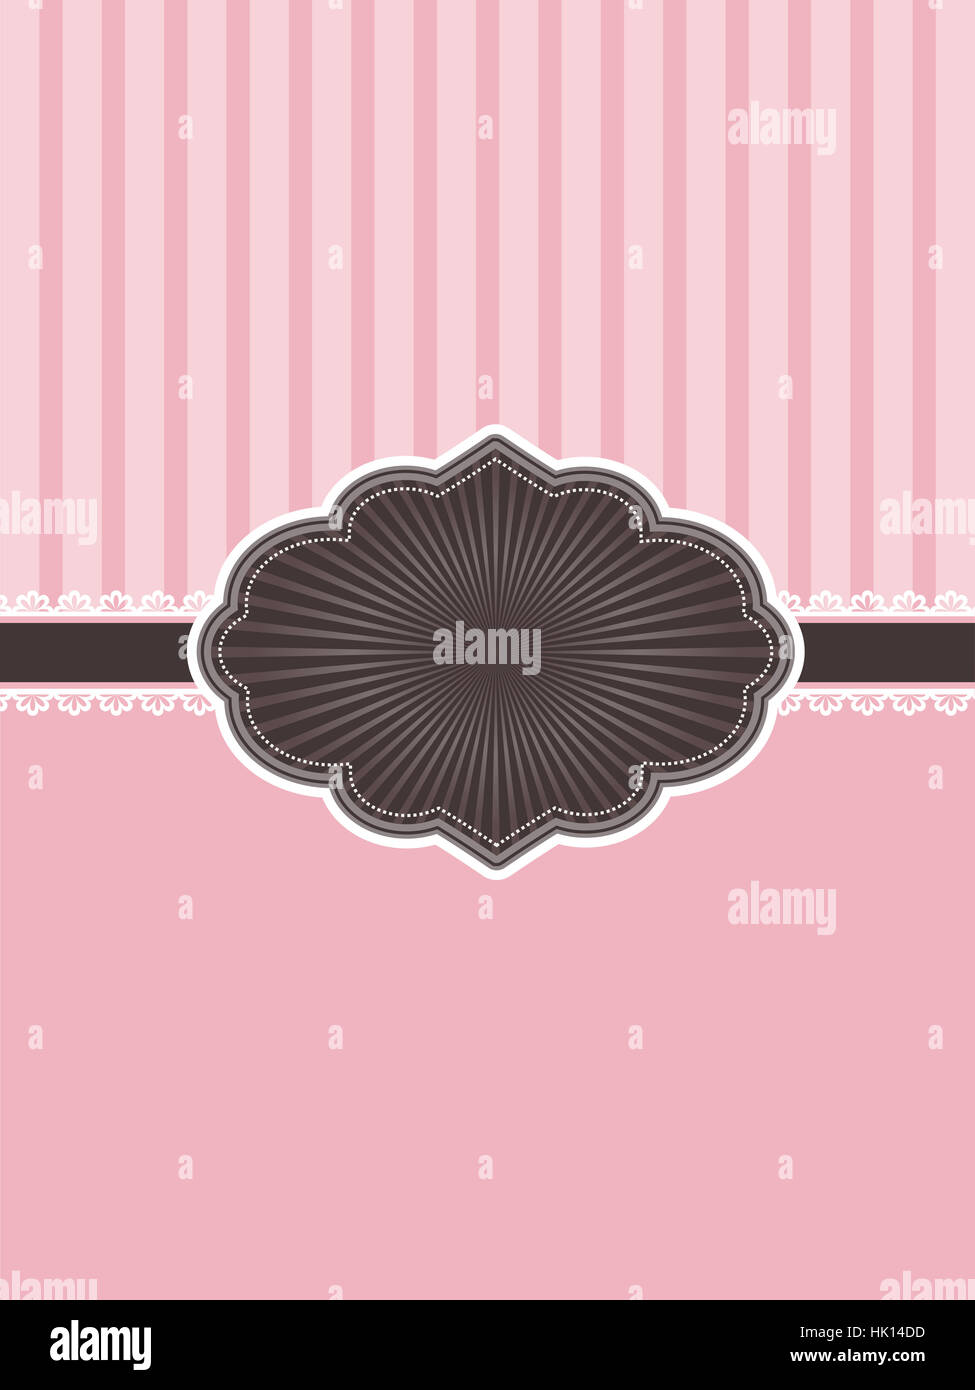 vintage, retro, decorative, lace, vector, frame, backdrop, background, - Stock Image